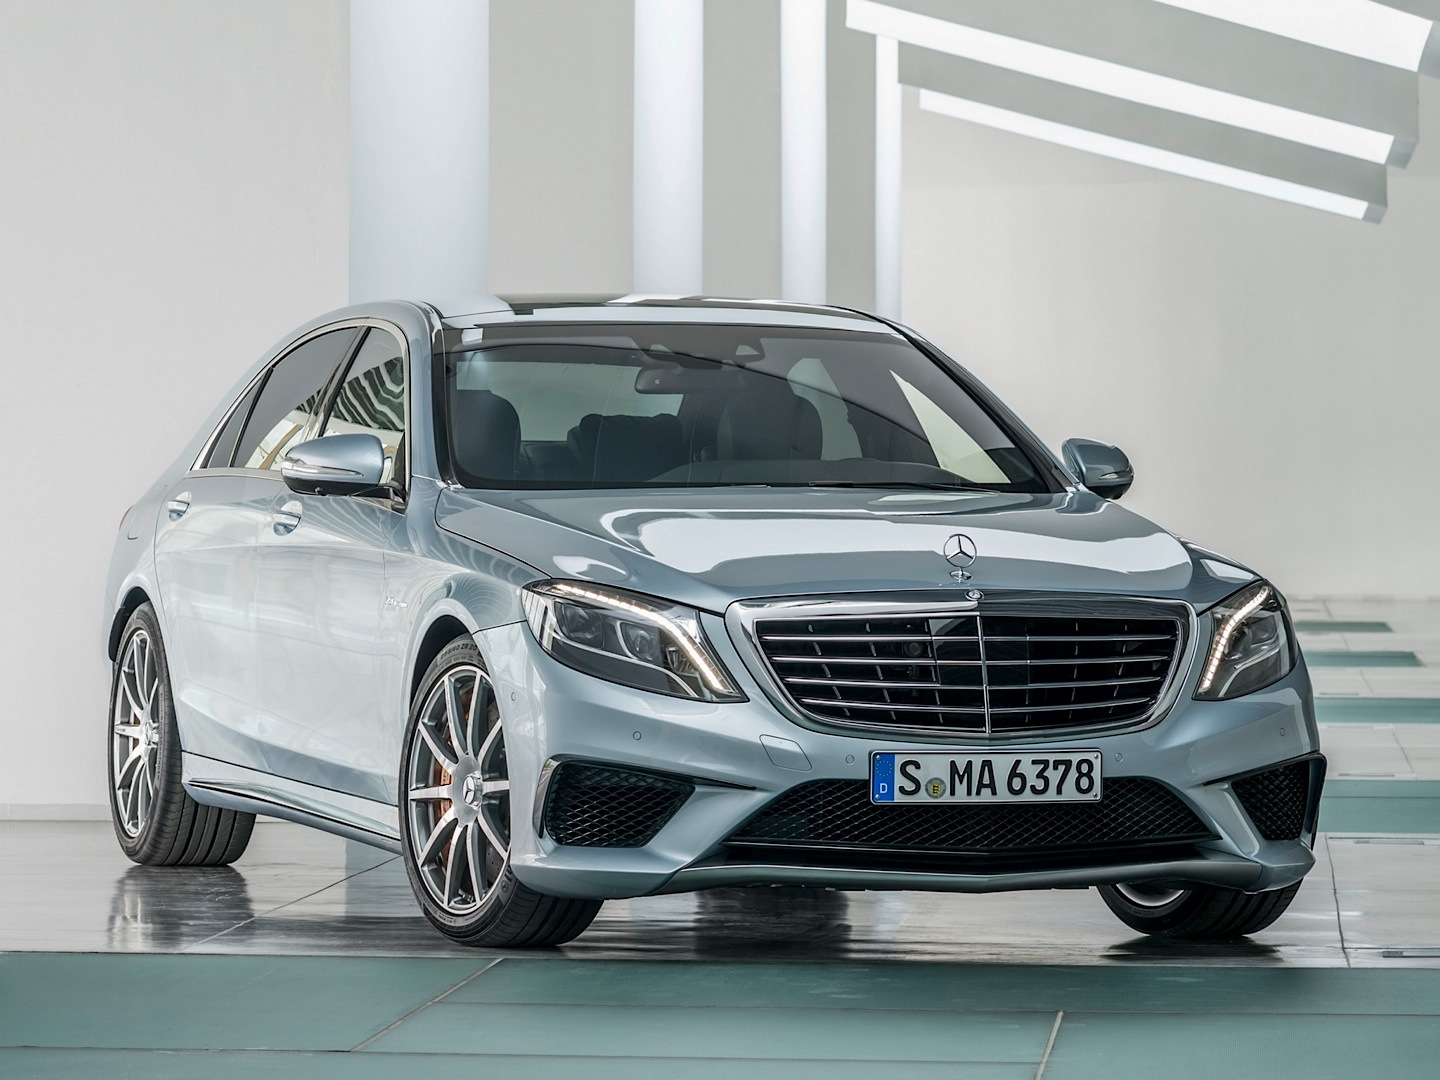 The Mercedes-Benz S63 AMG Gets Its Pricing Sorted out for ...